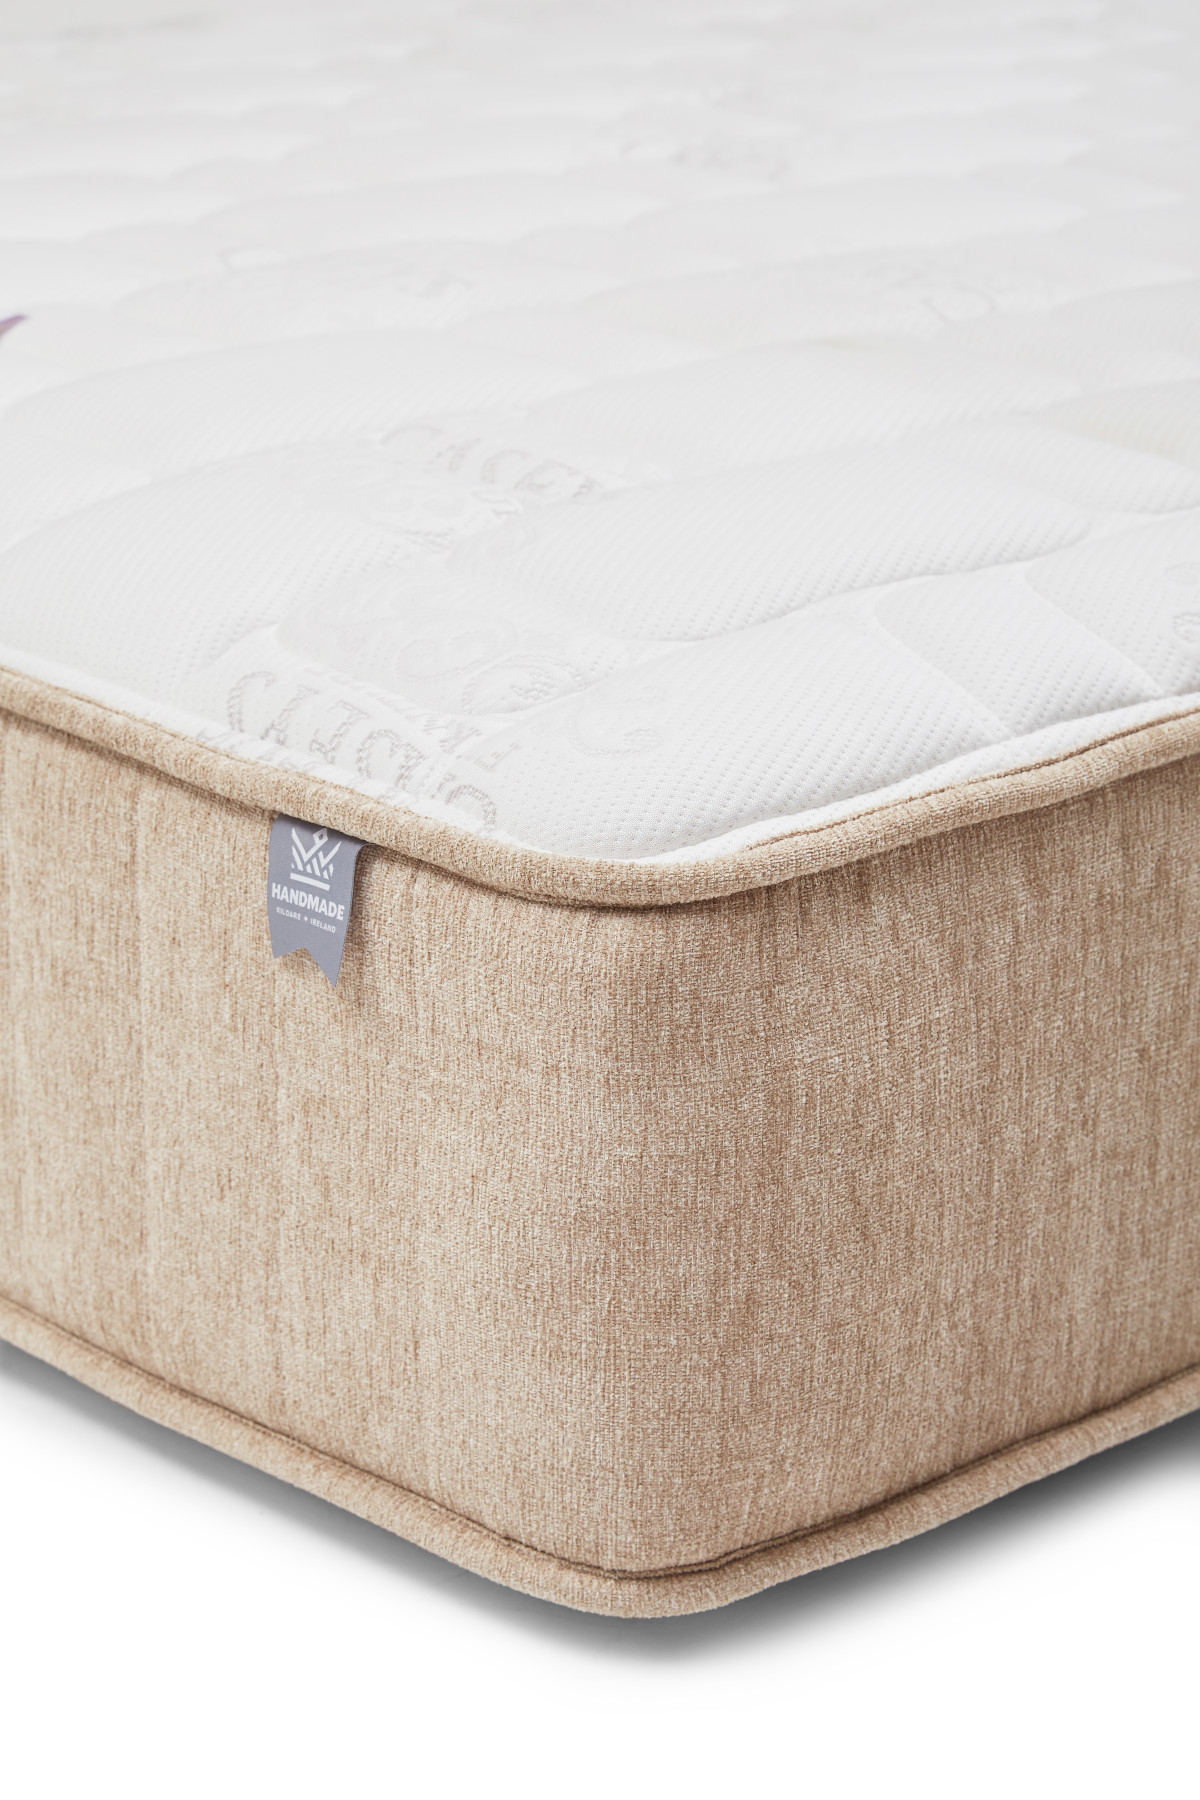 King Koil Superior Support Pocket Mattress